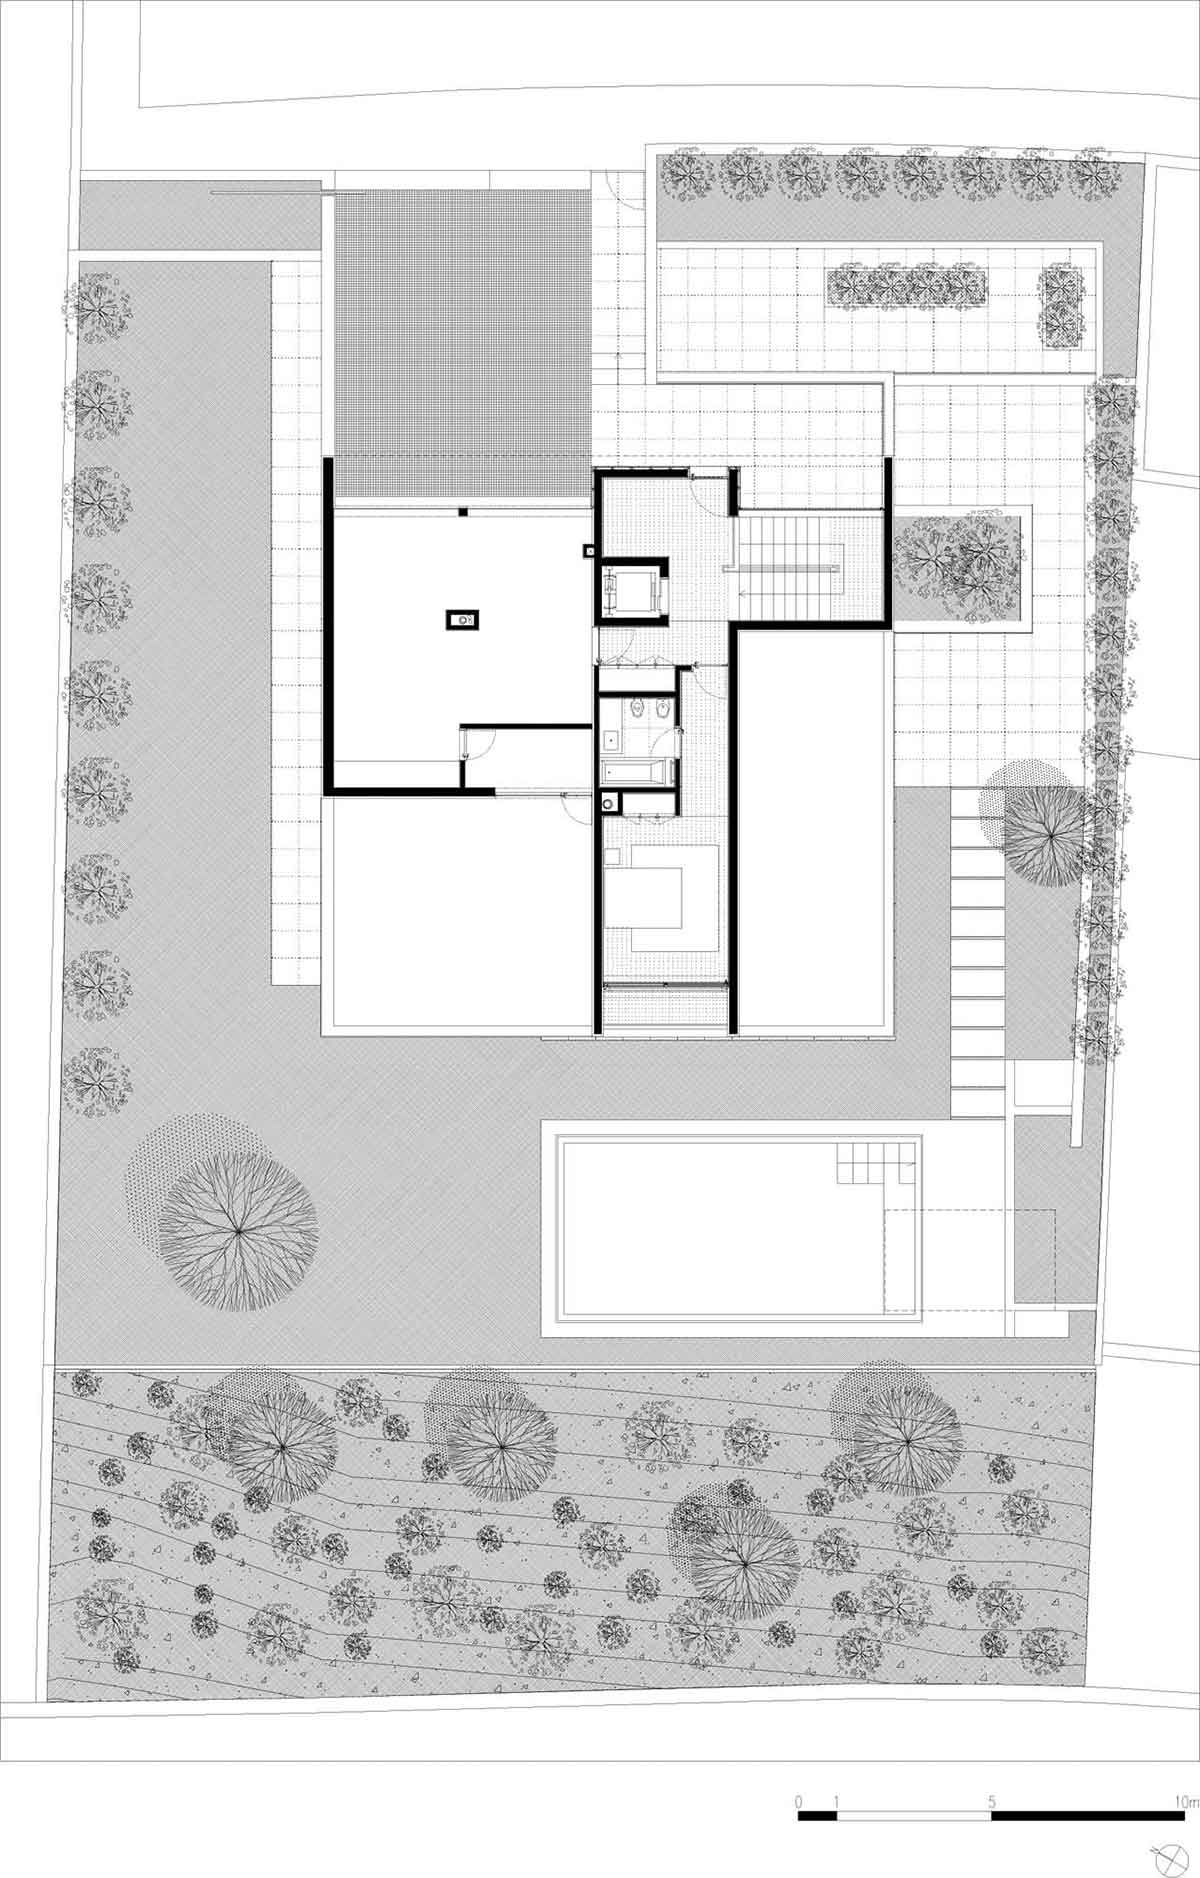 Second Floor Plan, CS House Portugal by Pitagoras Arquitectos